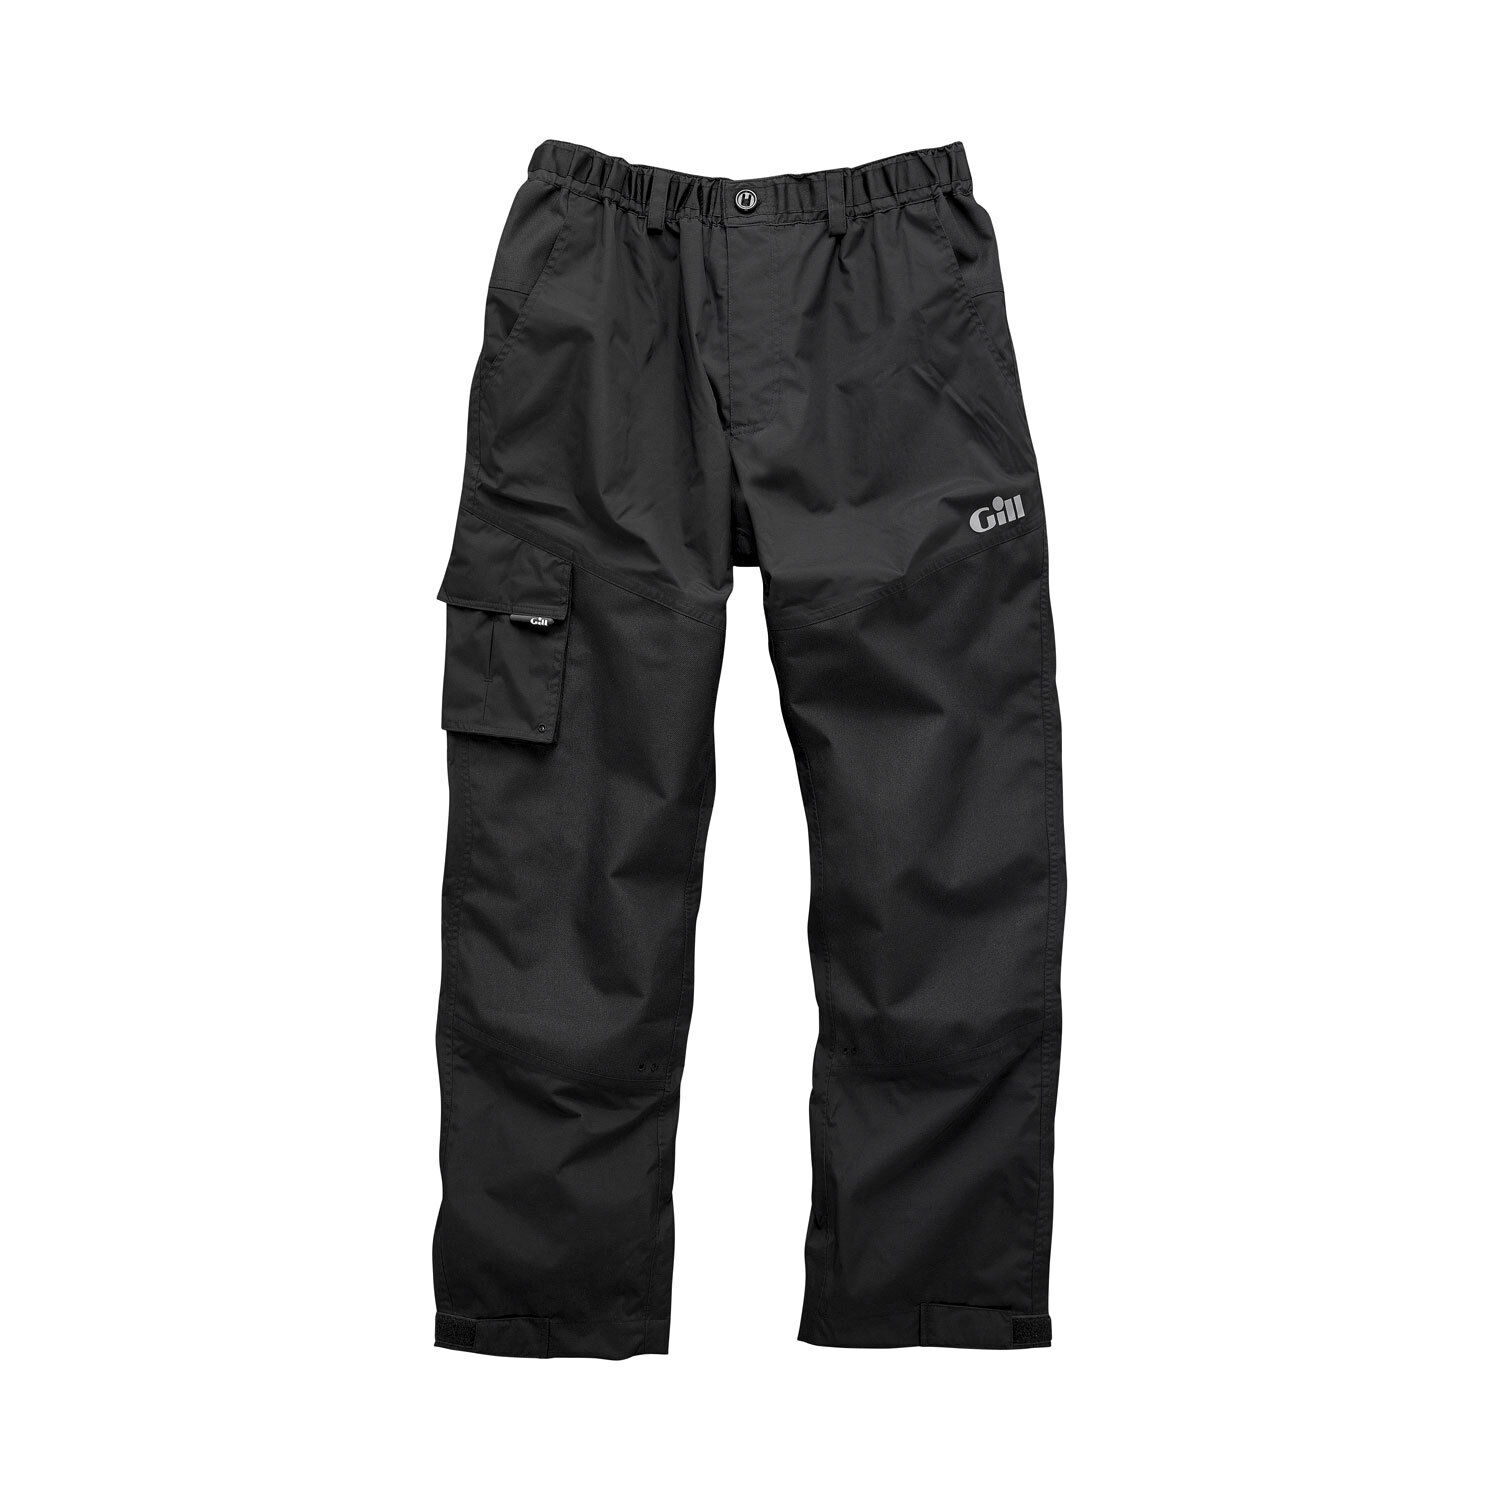 Gill Waterproof Sailing Trouser - Graphite